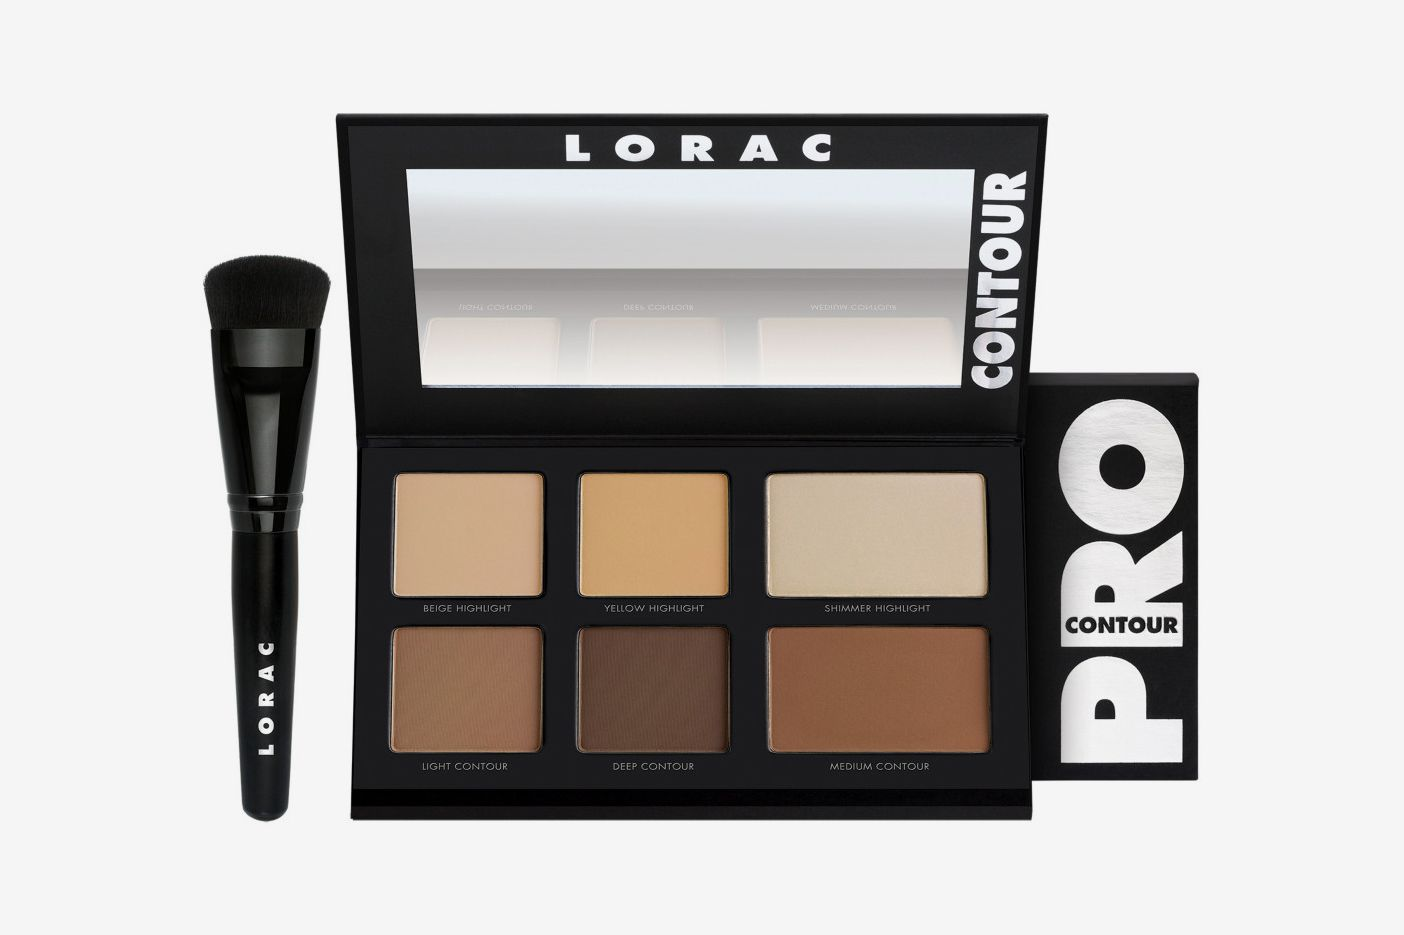 Lorac Pro Contour Palette with Brush